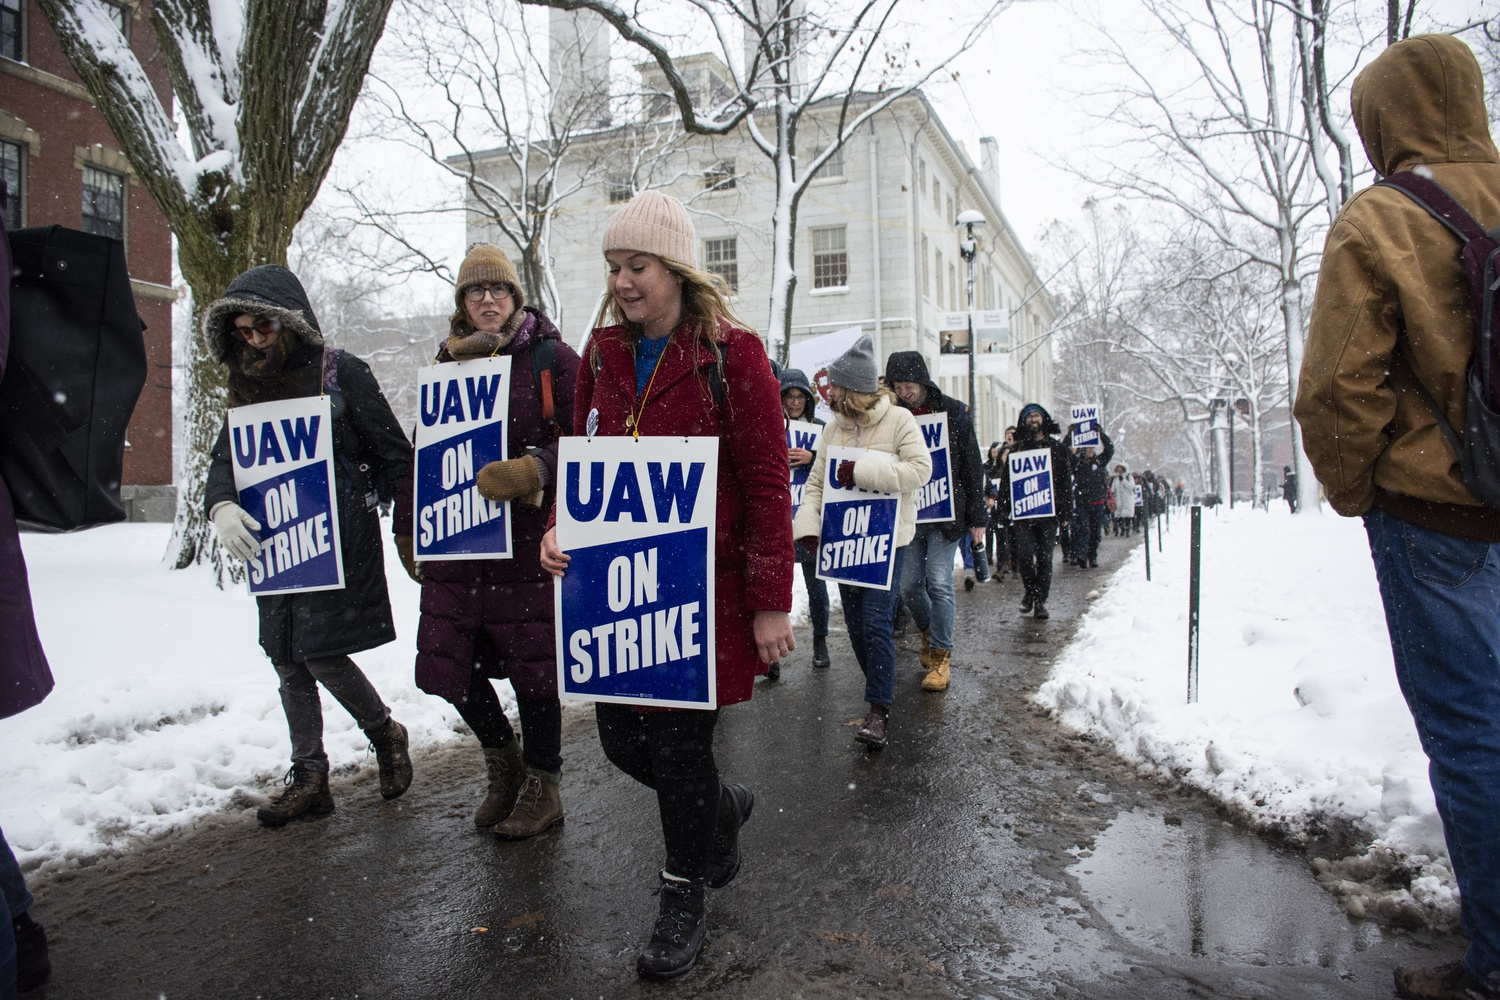 HGSU-UAW previously went on strike for nearly four weeks in December 2019.